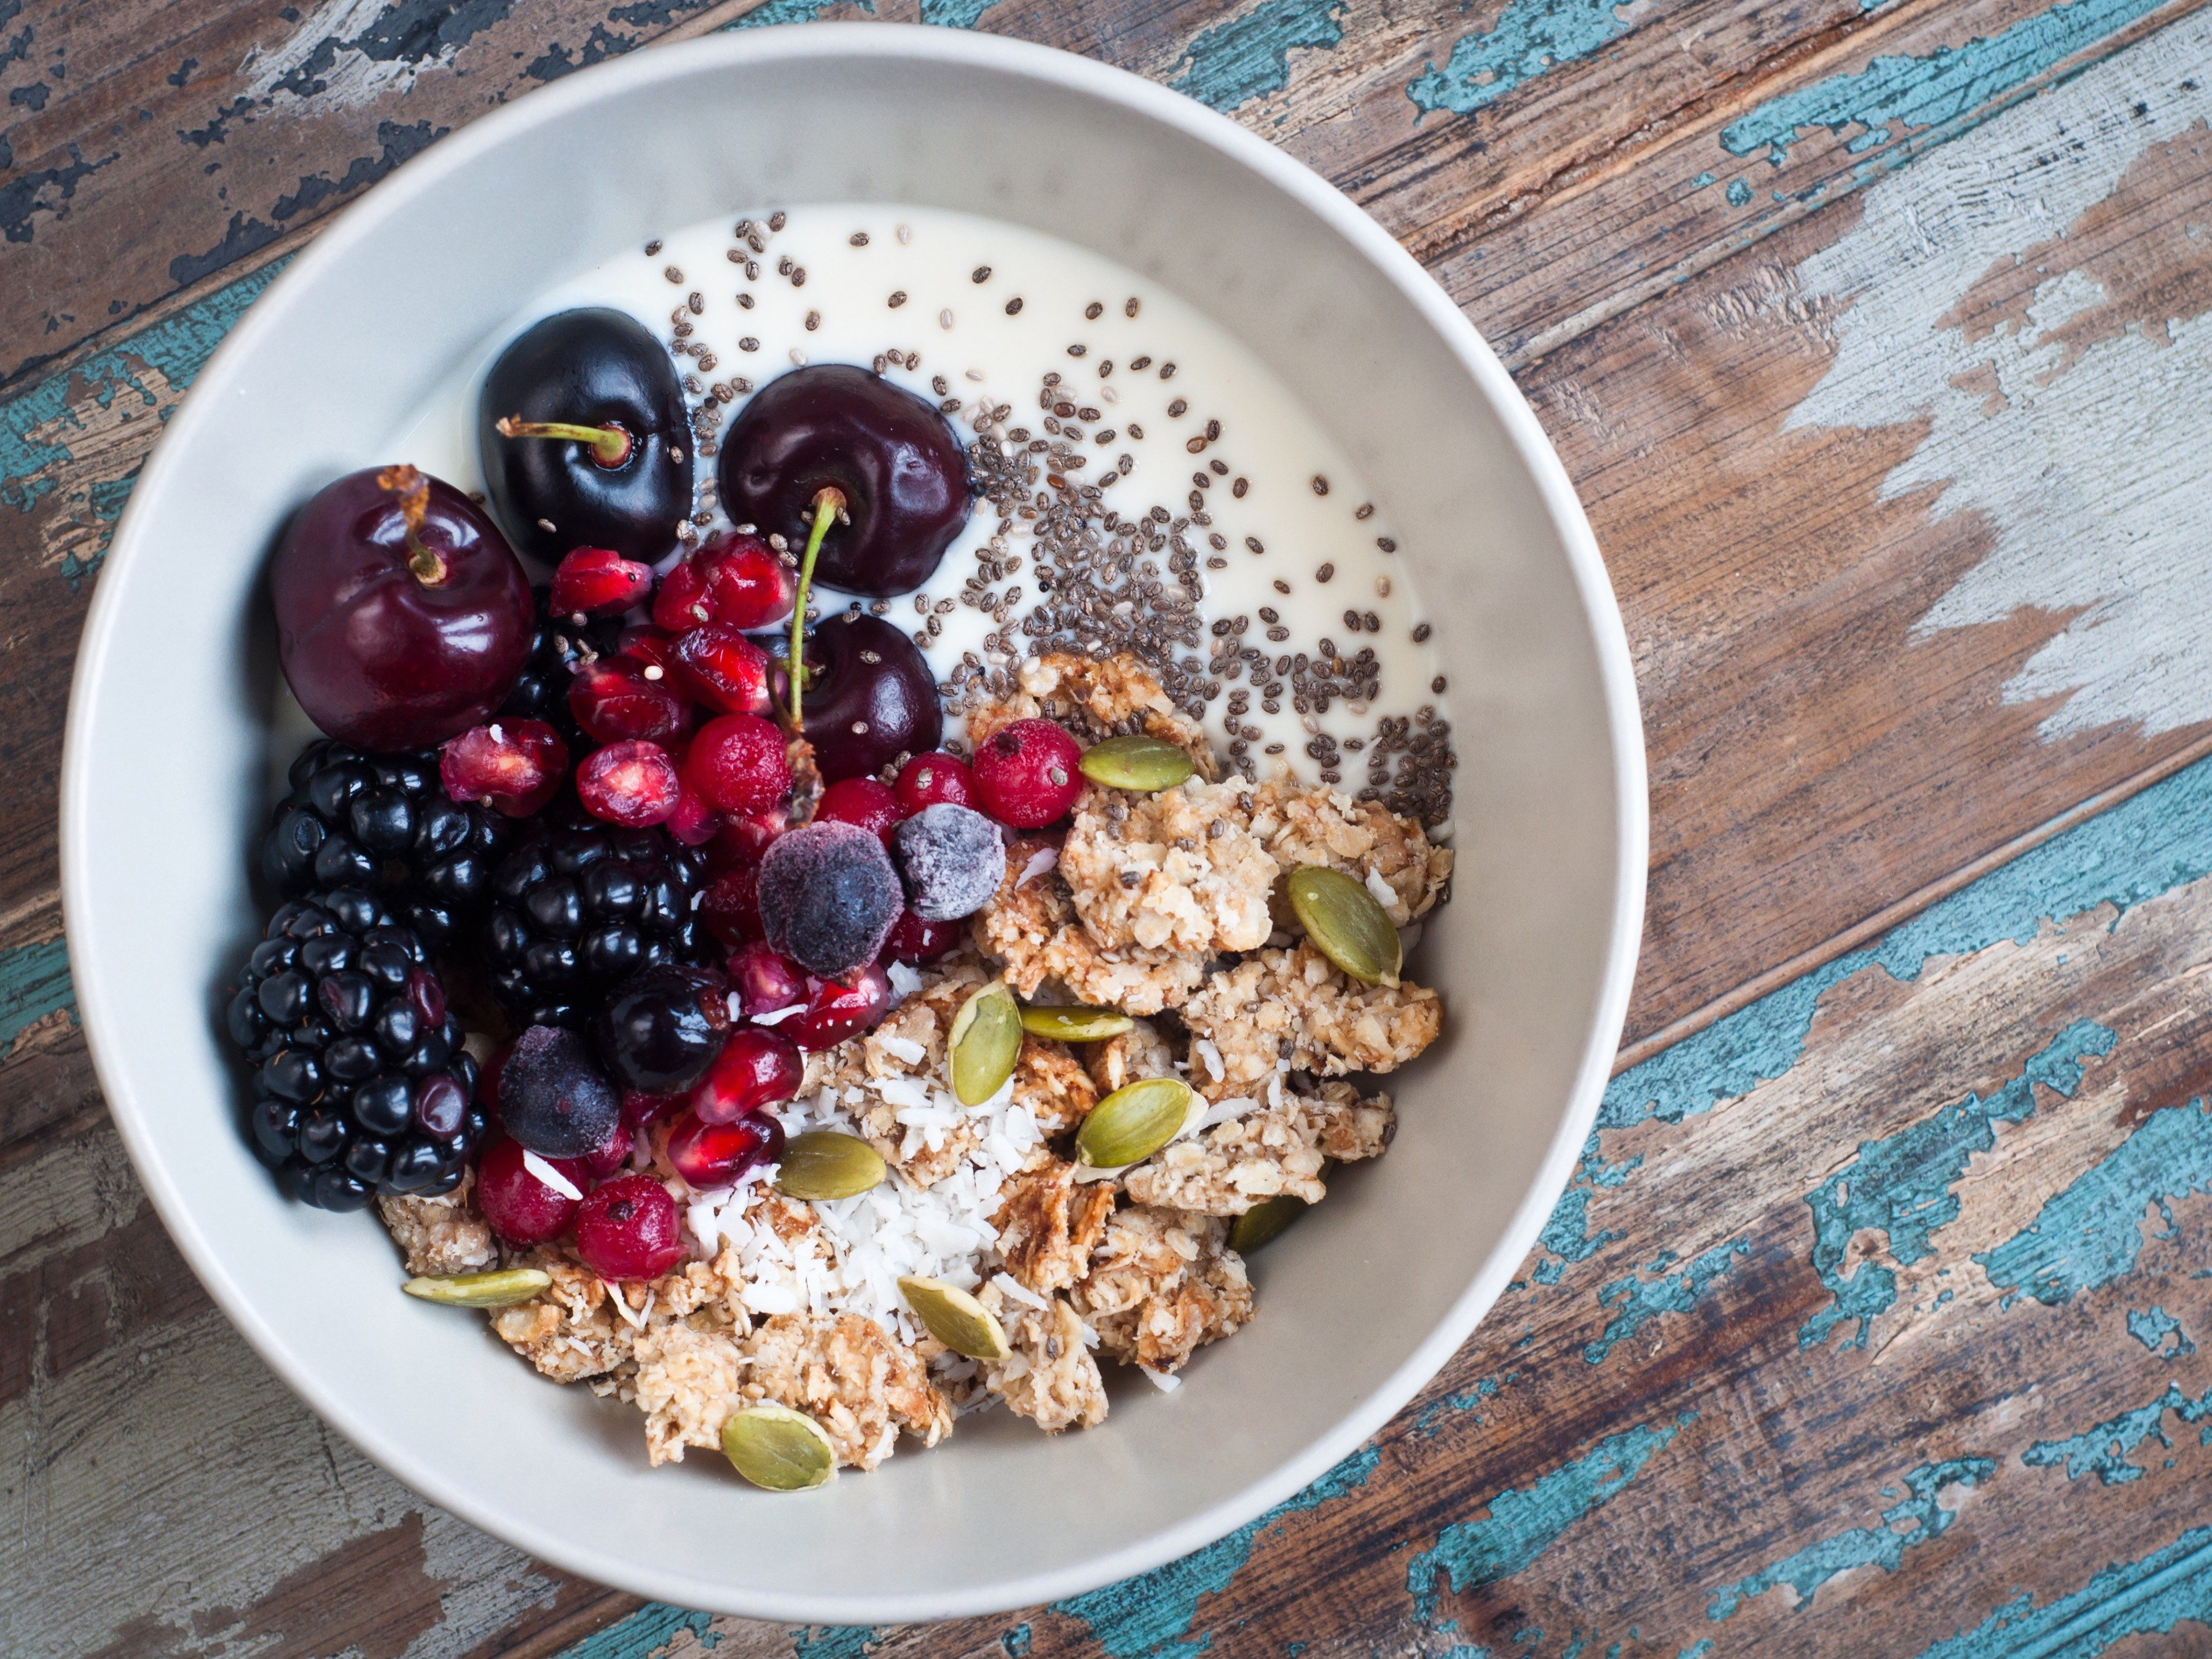 8. Eat a high-fibre breakfast cereal at least four times a week.